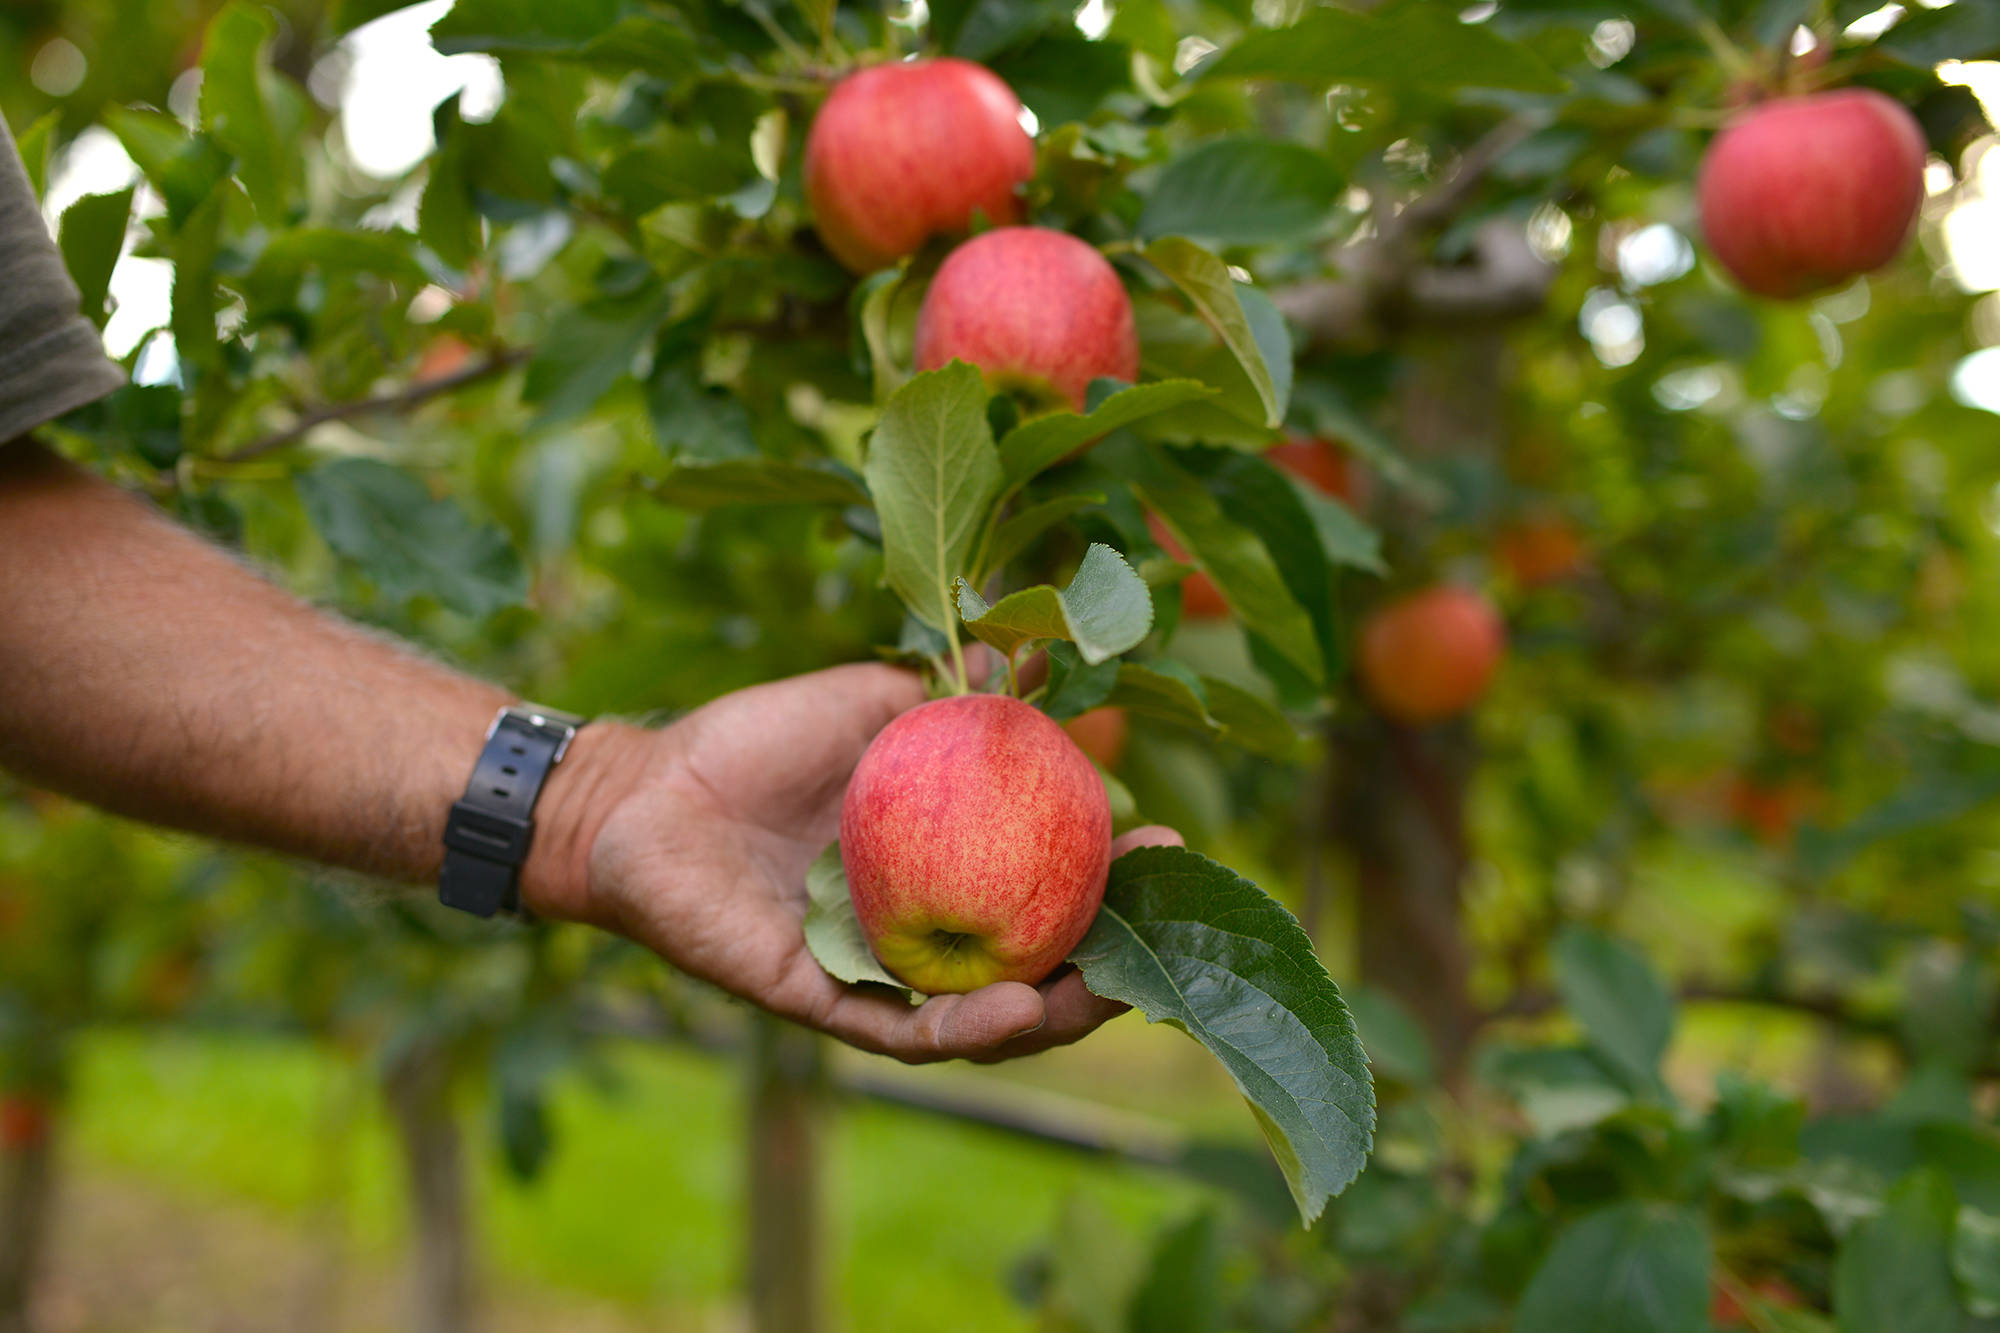 B.C.'s 2021 budget is trending in the right direction to support farmers, says the BC Fruit Growers' Association. (Phil McLachlan - Capital News)